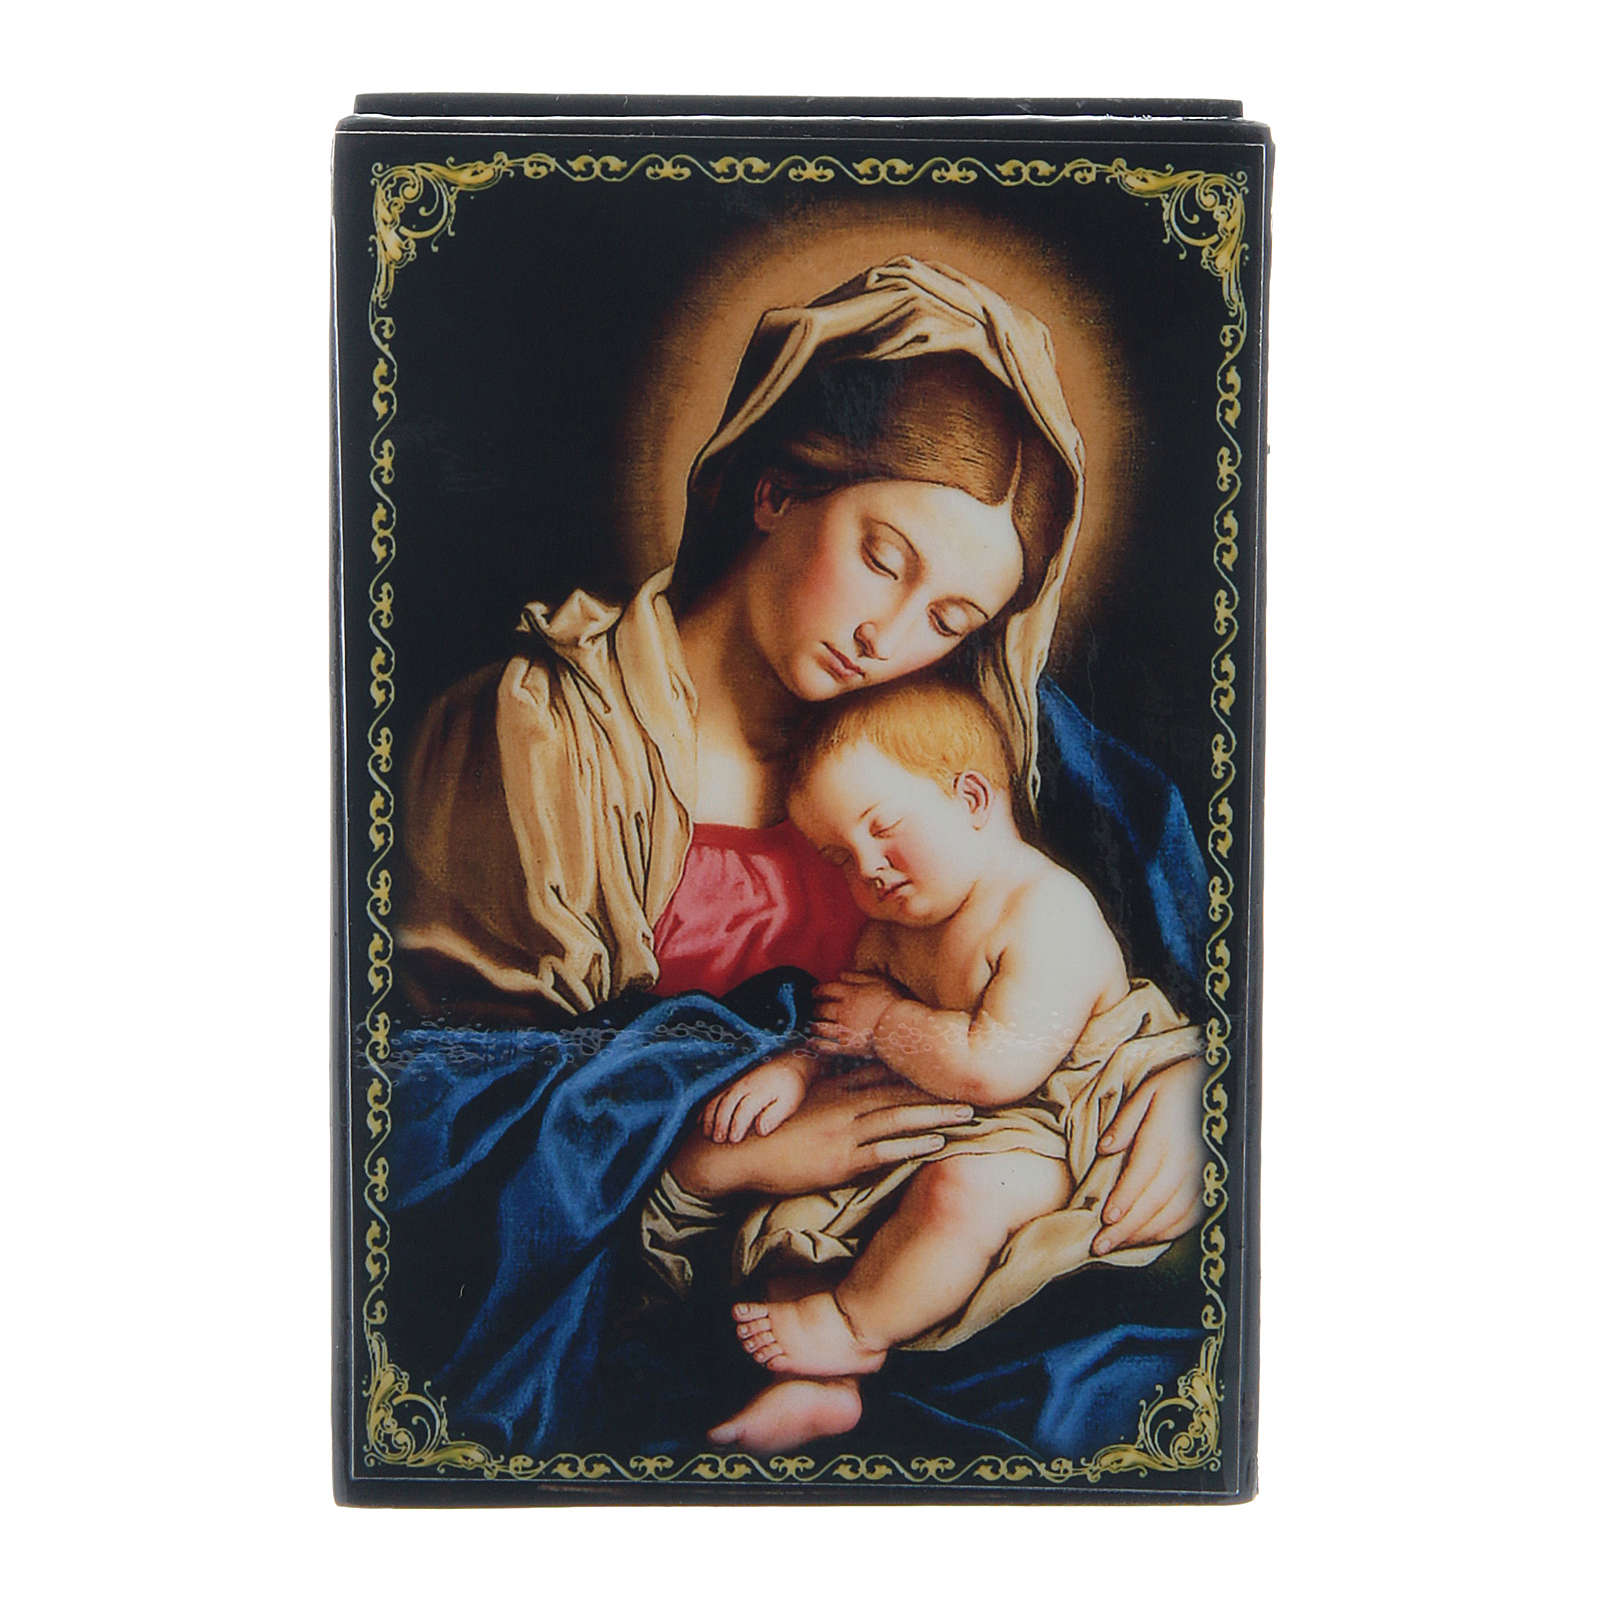 Russian papier-mâché and lacquer box Madonna with Child 9x6 cm 4